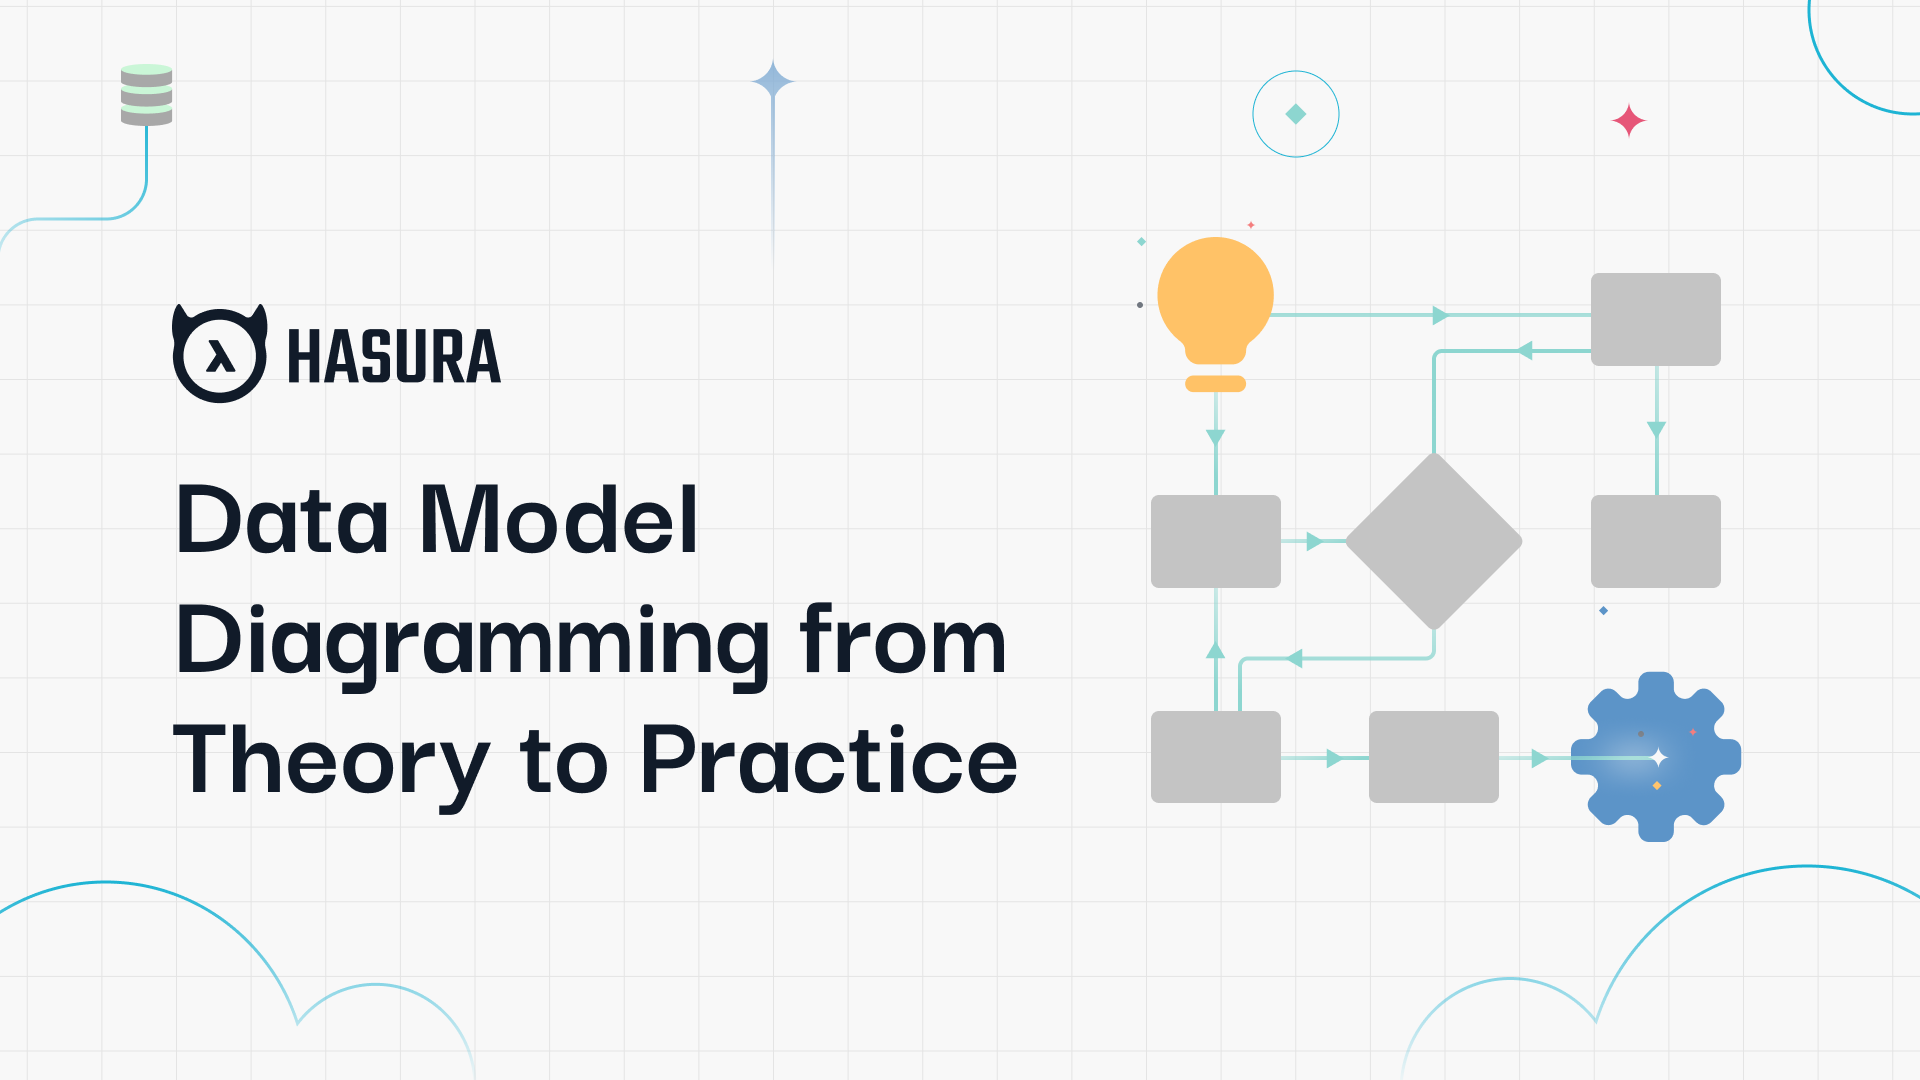 Data Model Diagramming from Theory to Practice